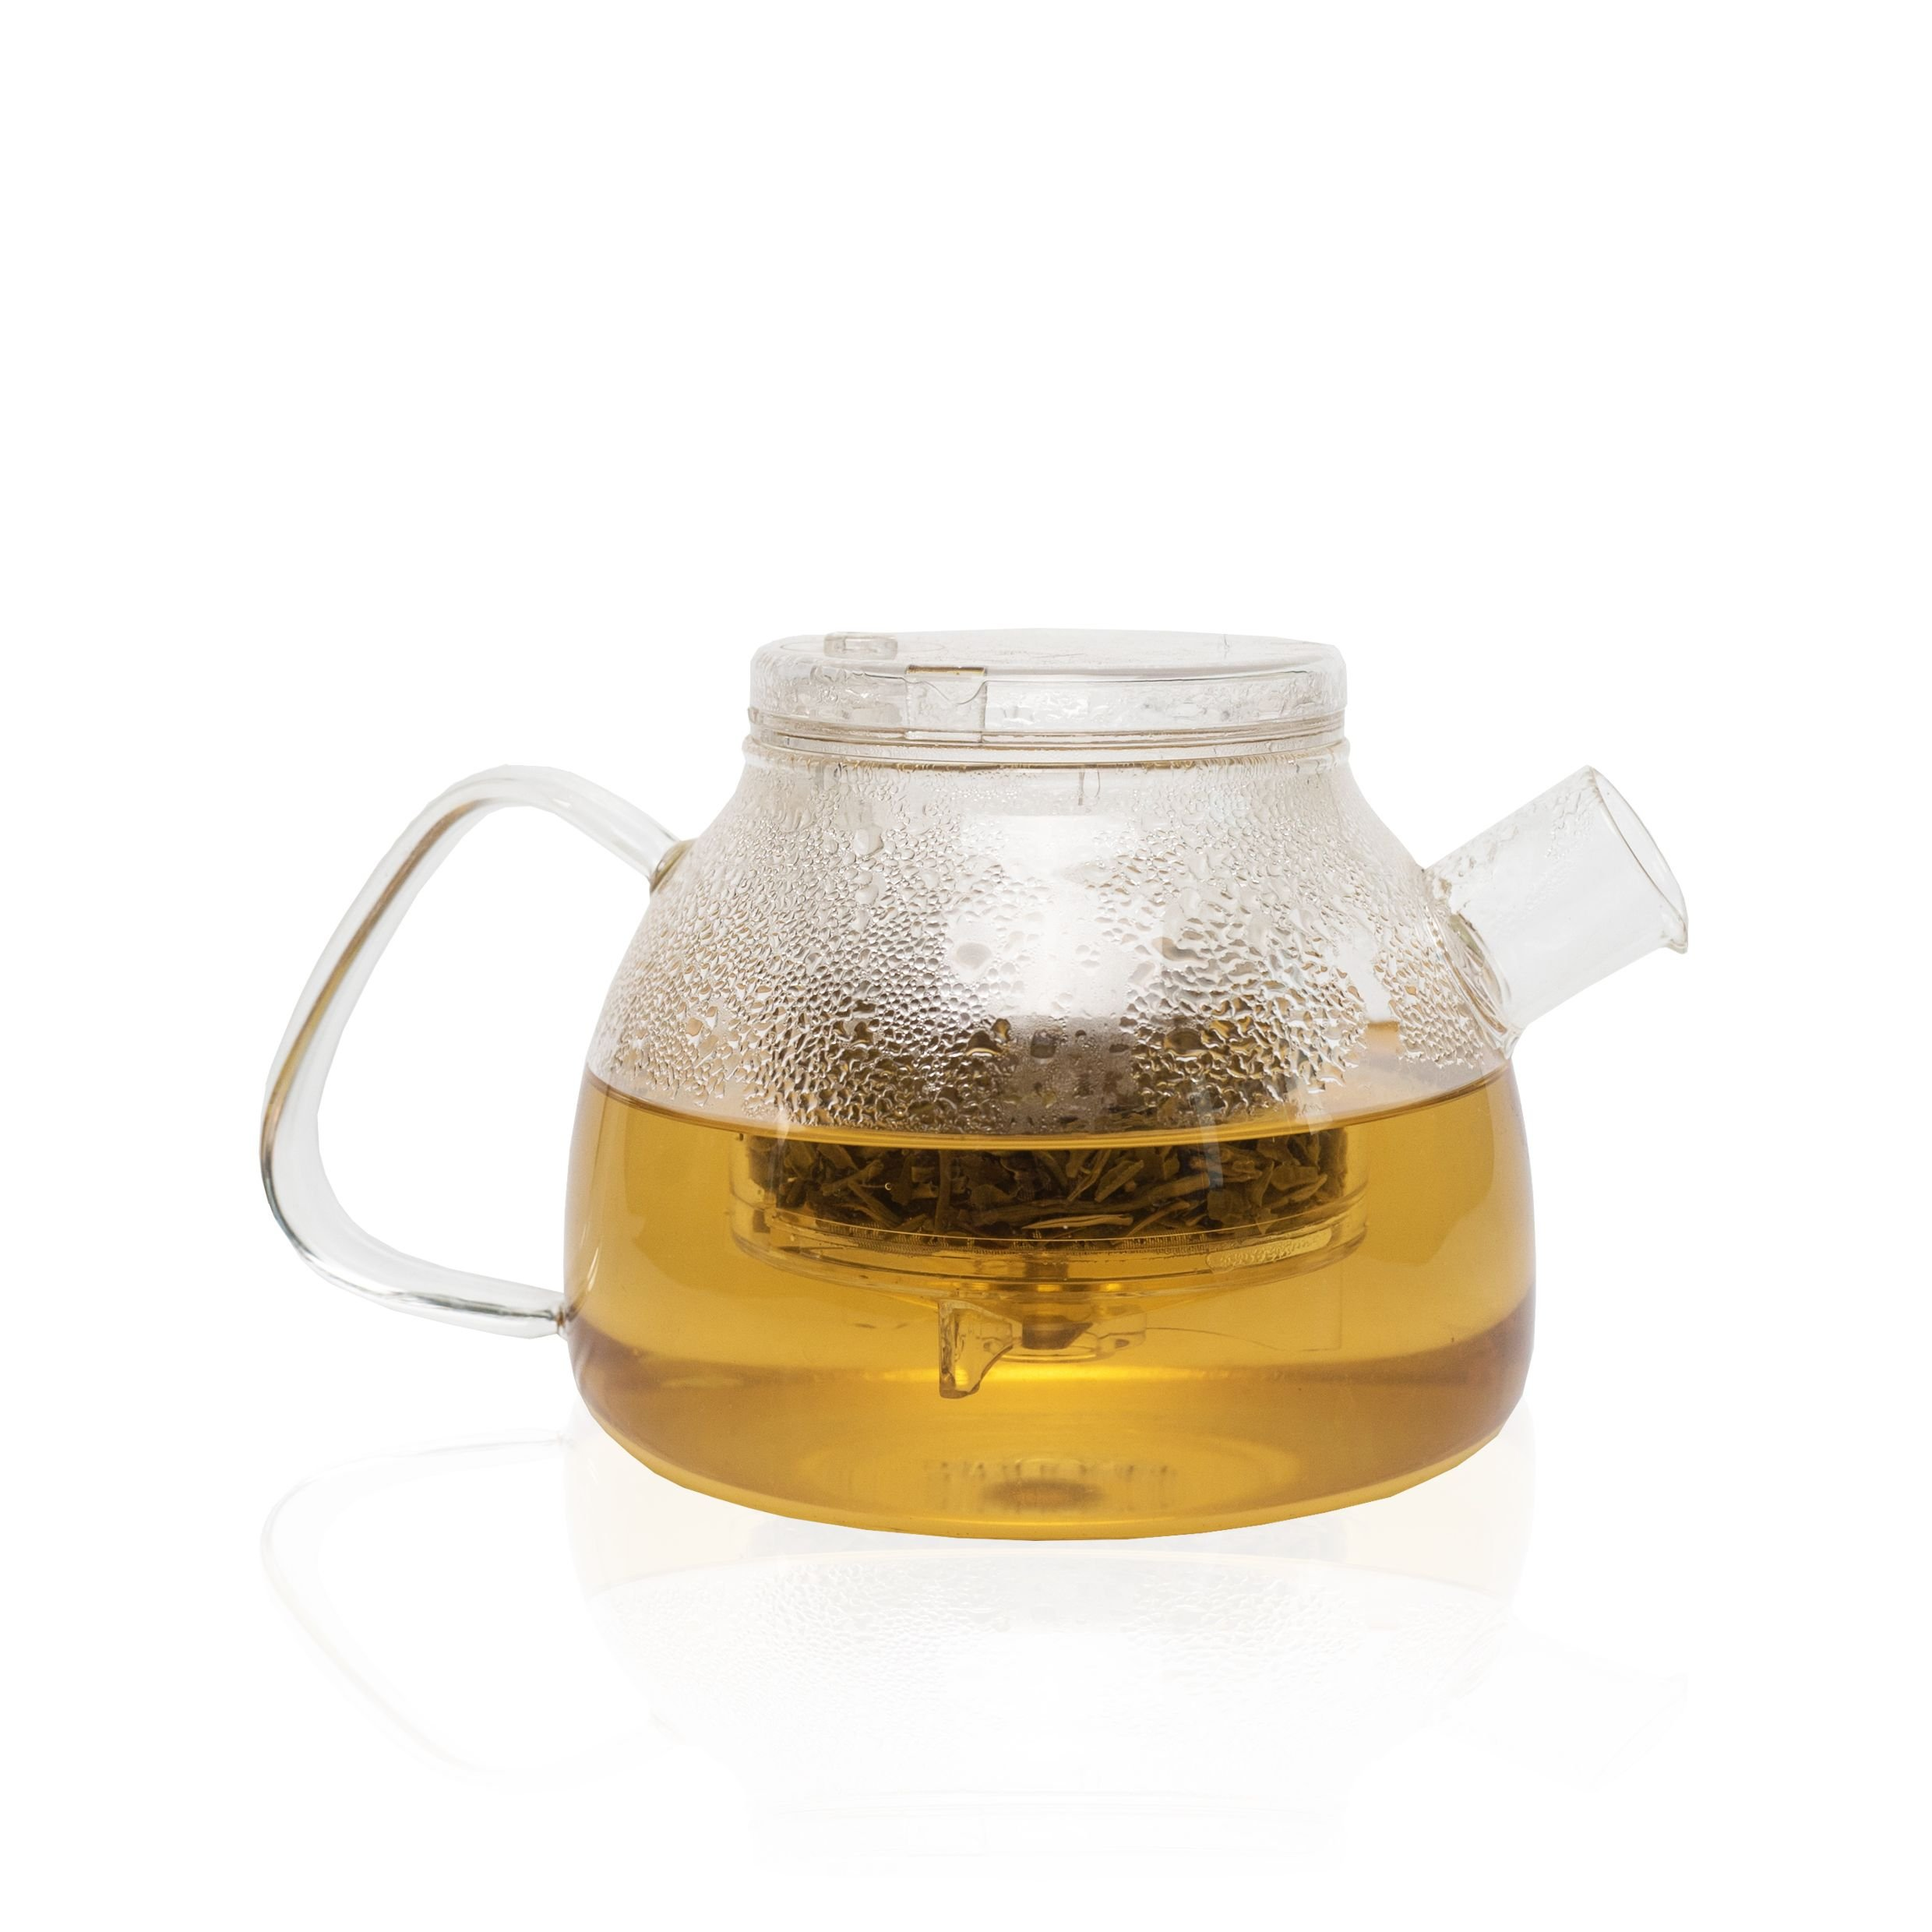 TEASPEC Lazy Pour, Glass Teapot with removable infuser, 900ml